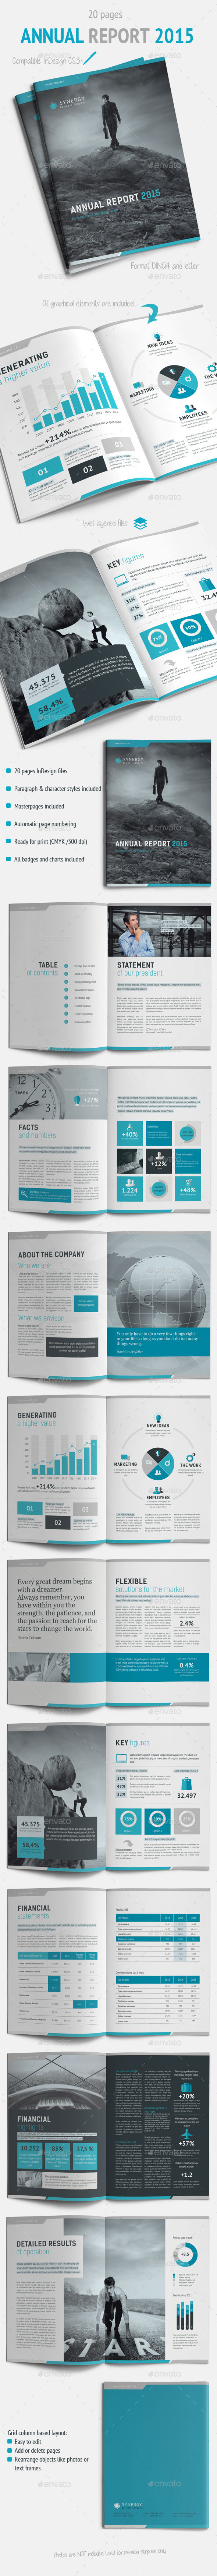 GraphicRiver Annual Report 2015 9690357